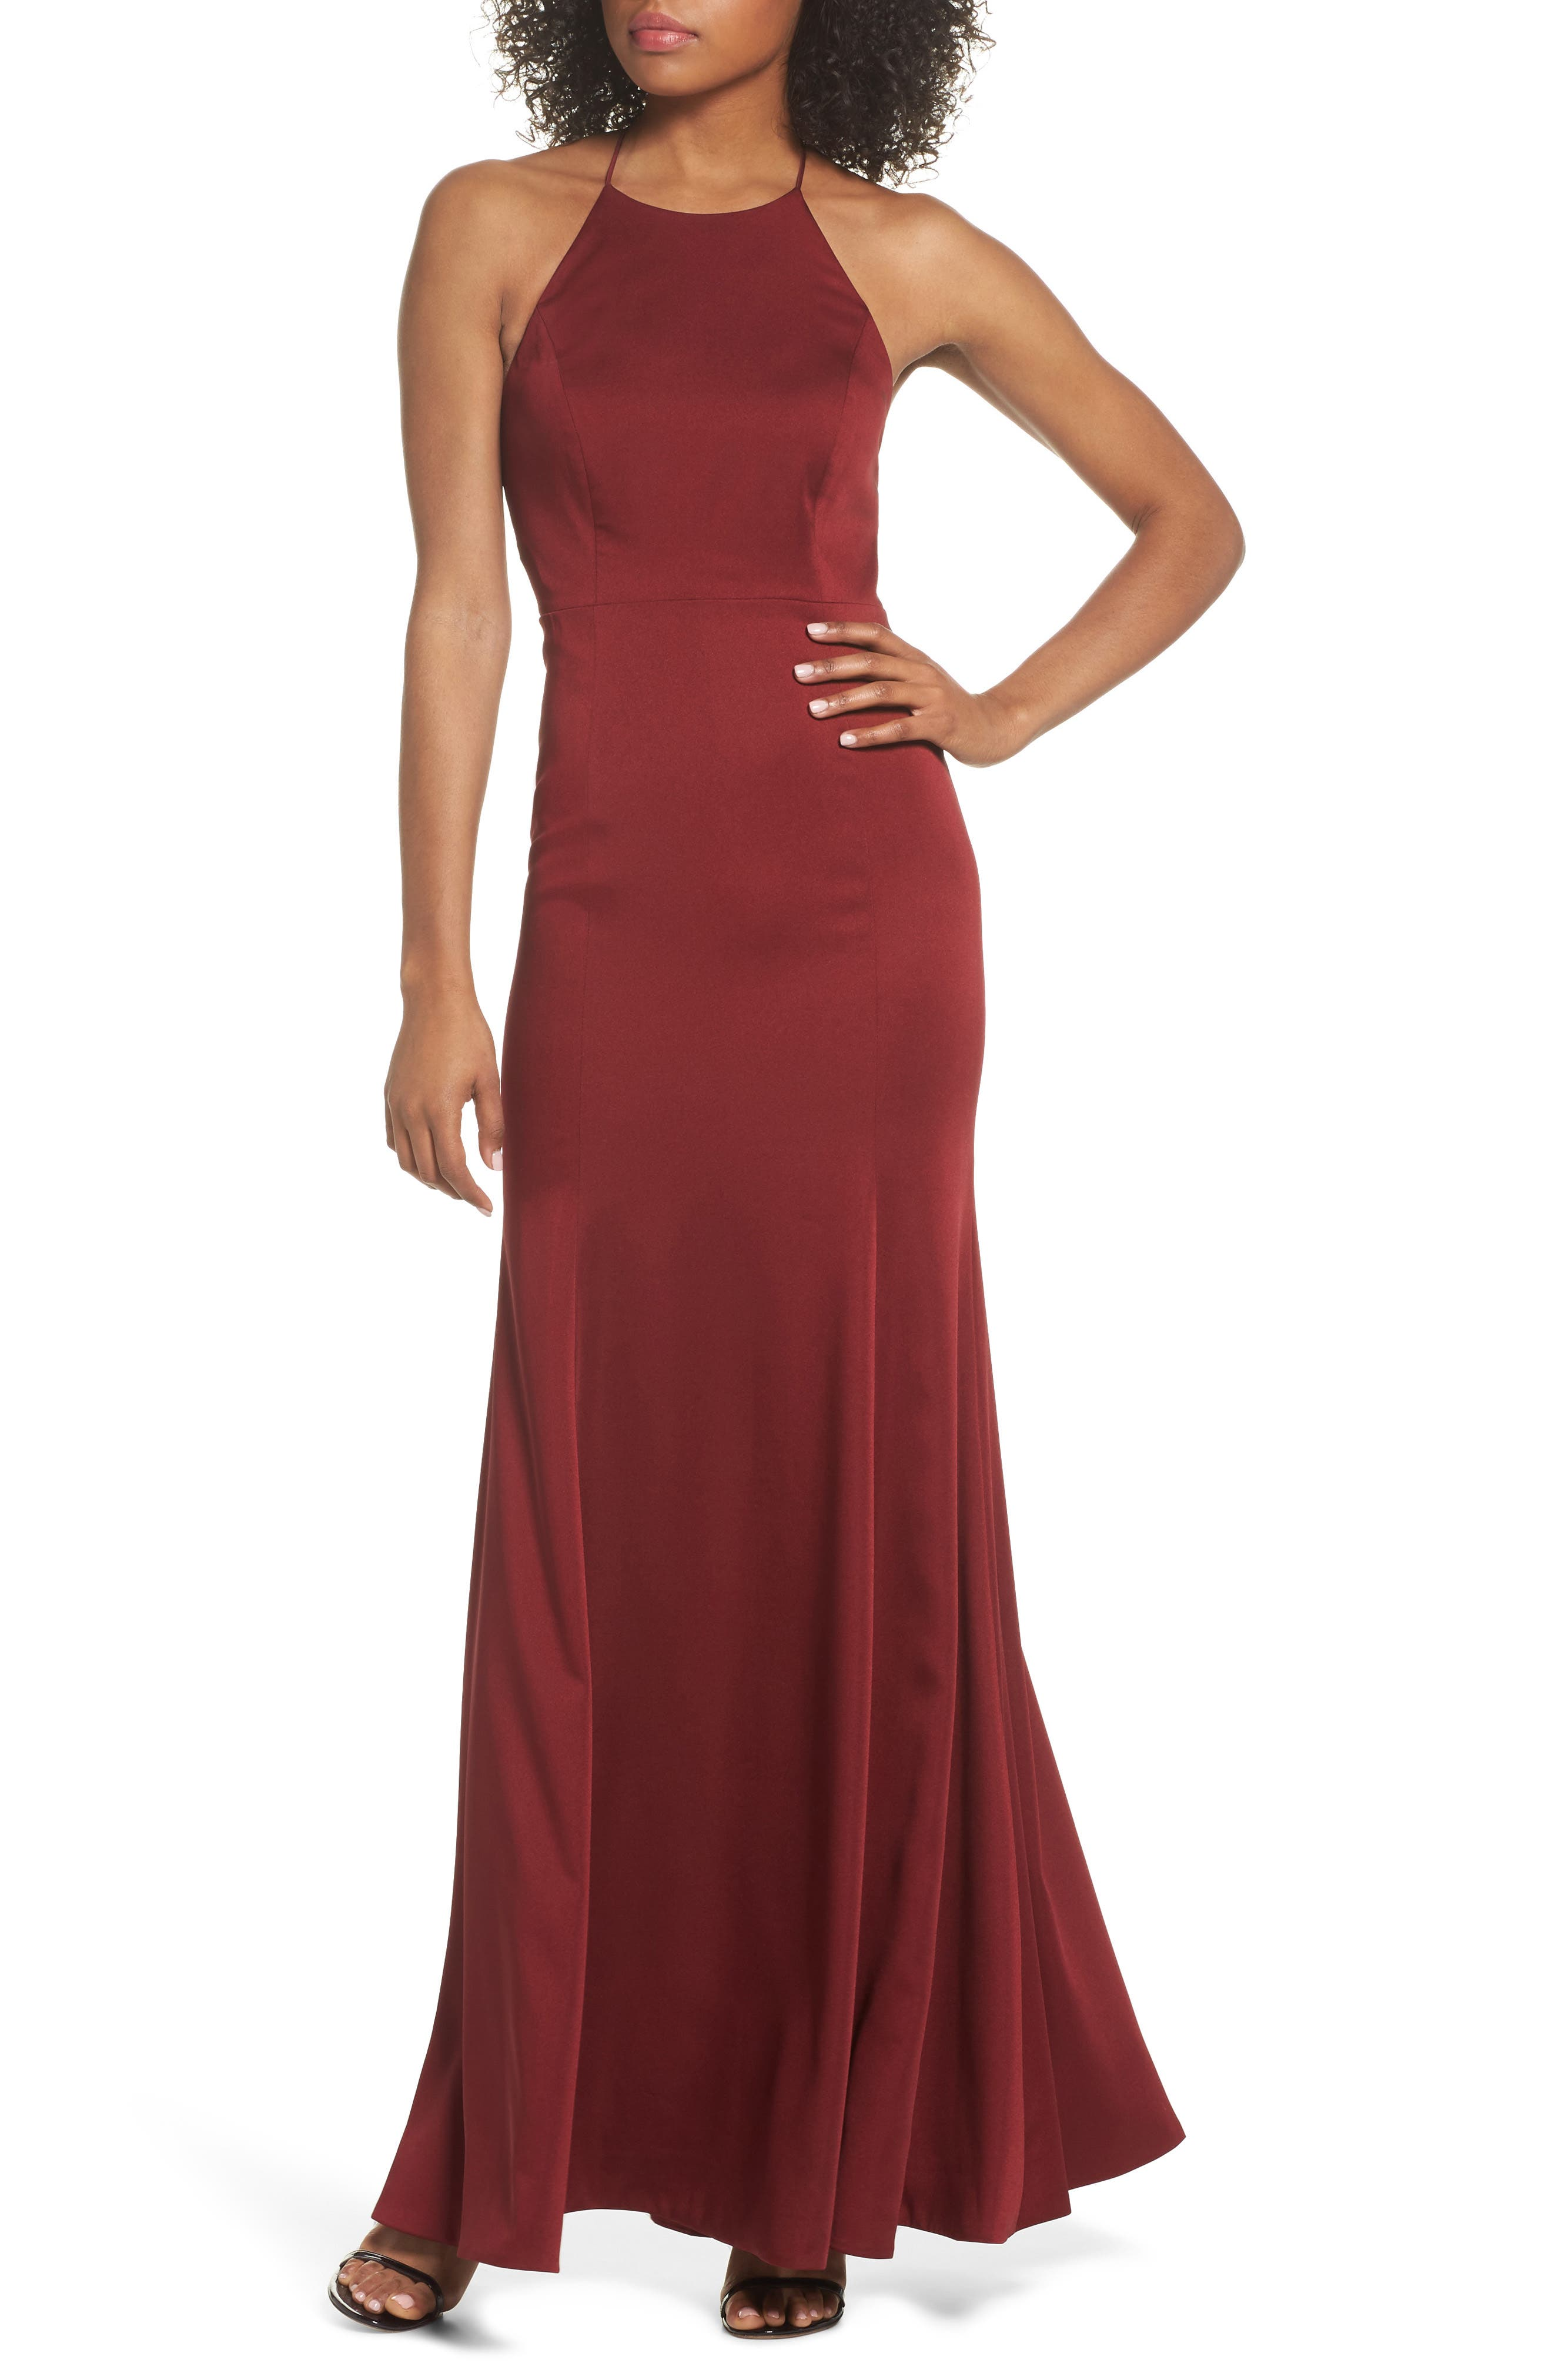 Naomi Luxe Crepe Halter Gown,                             Main thumbnail 1, color,                             CRANBERRY